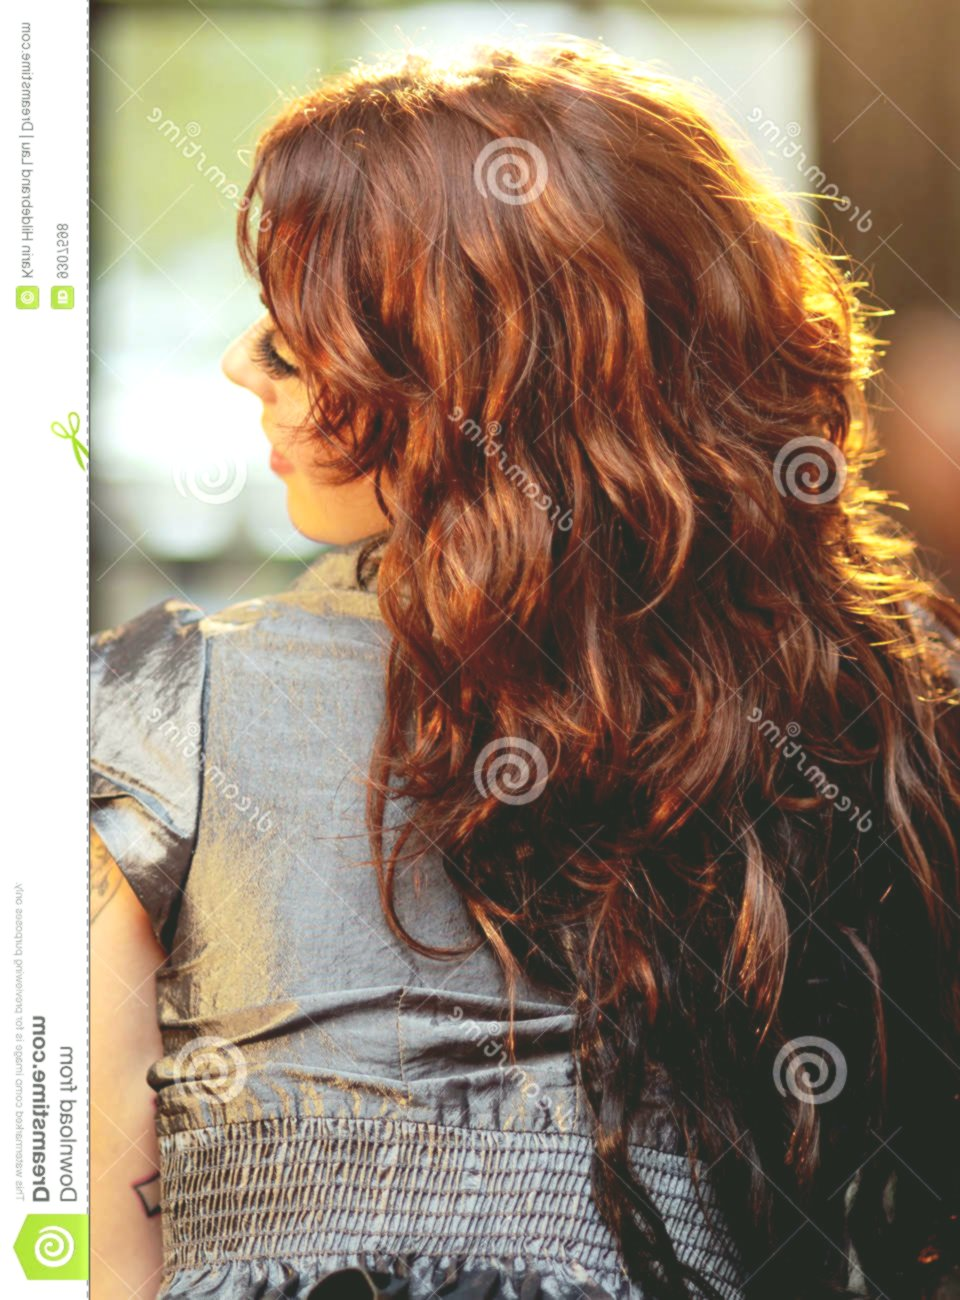 Beautiful Maroon Hair Online Lovely Maroon Hair Model